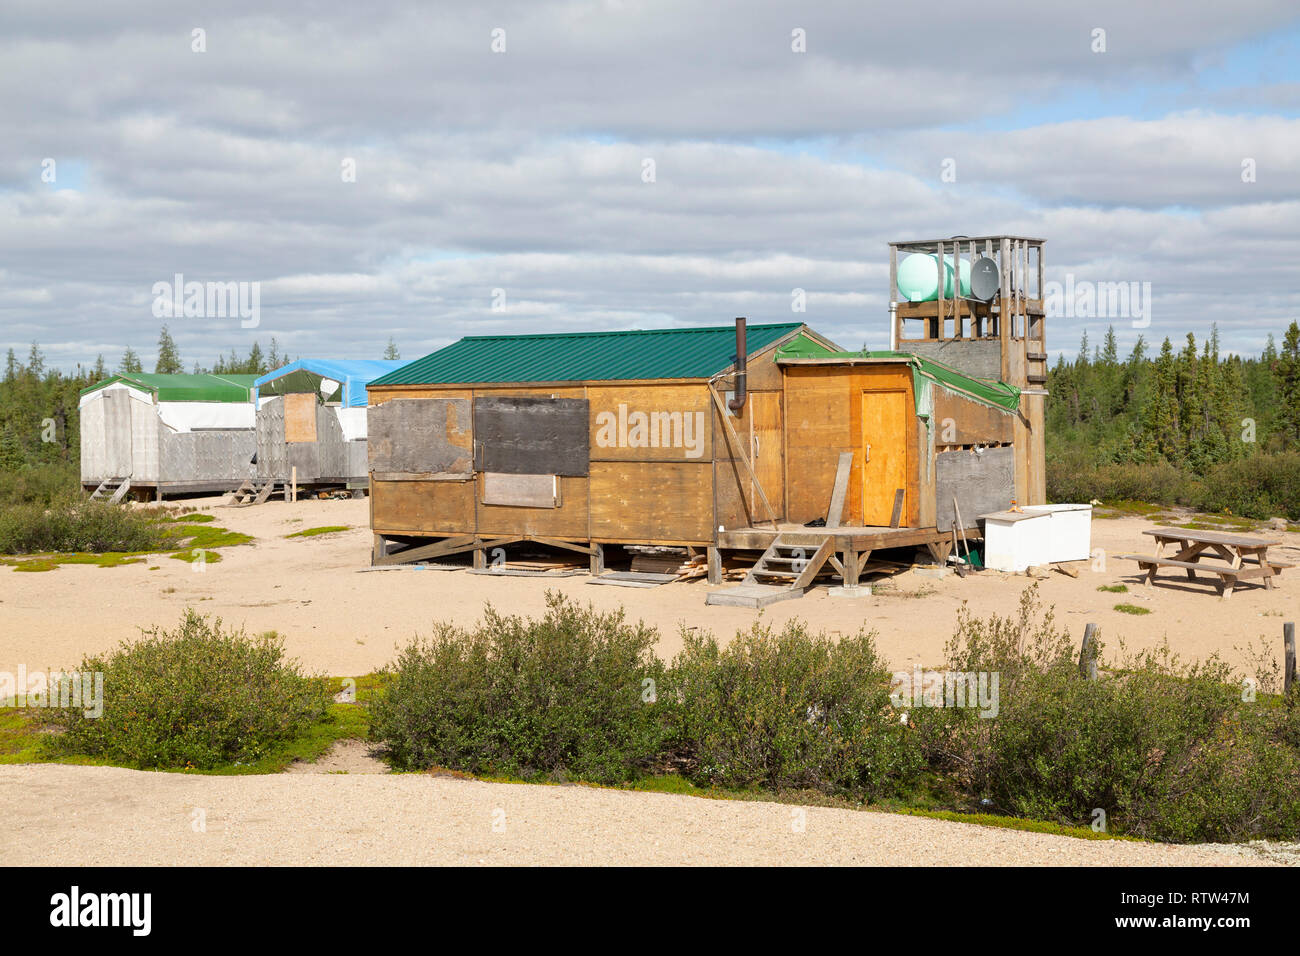 Camp on the border of  Manitoba and Nunavut in Canada. The camp has been used as a base for hunting. - Stock Image